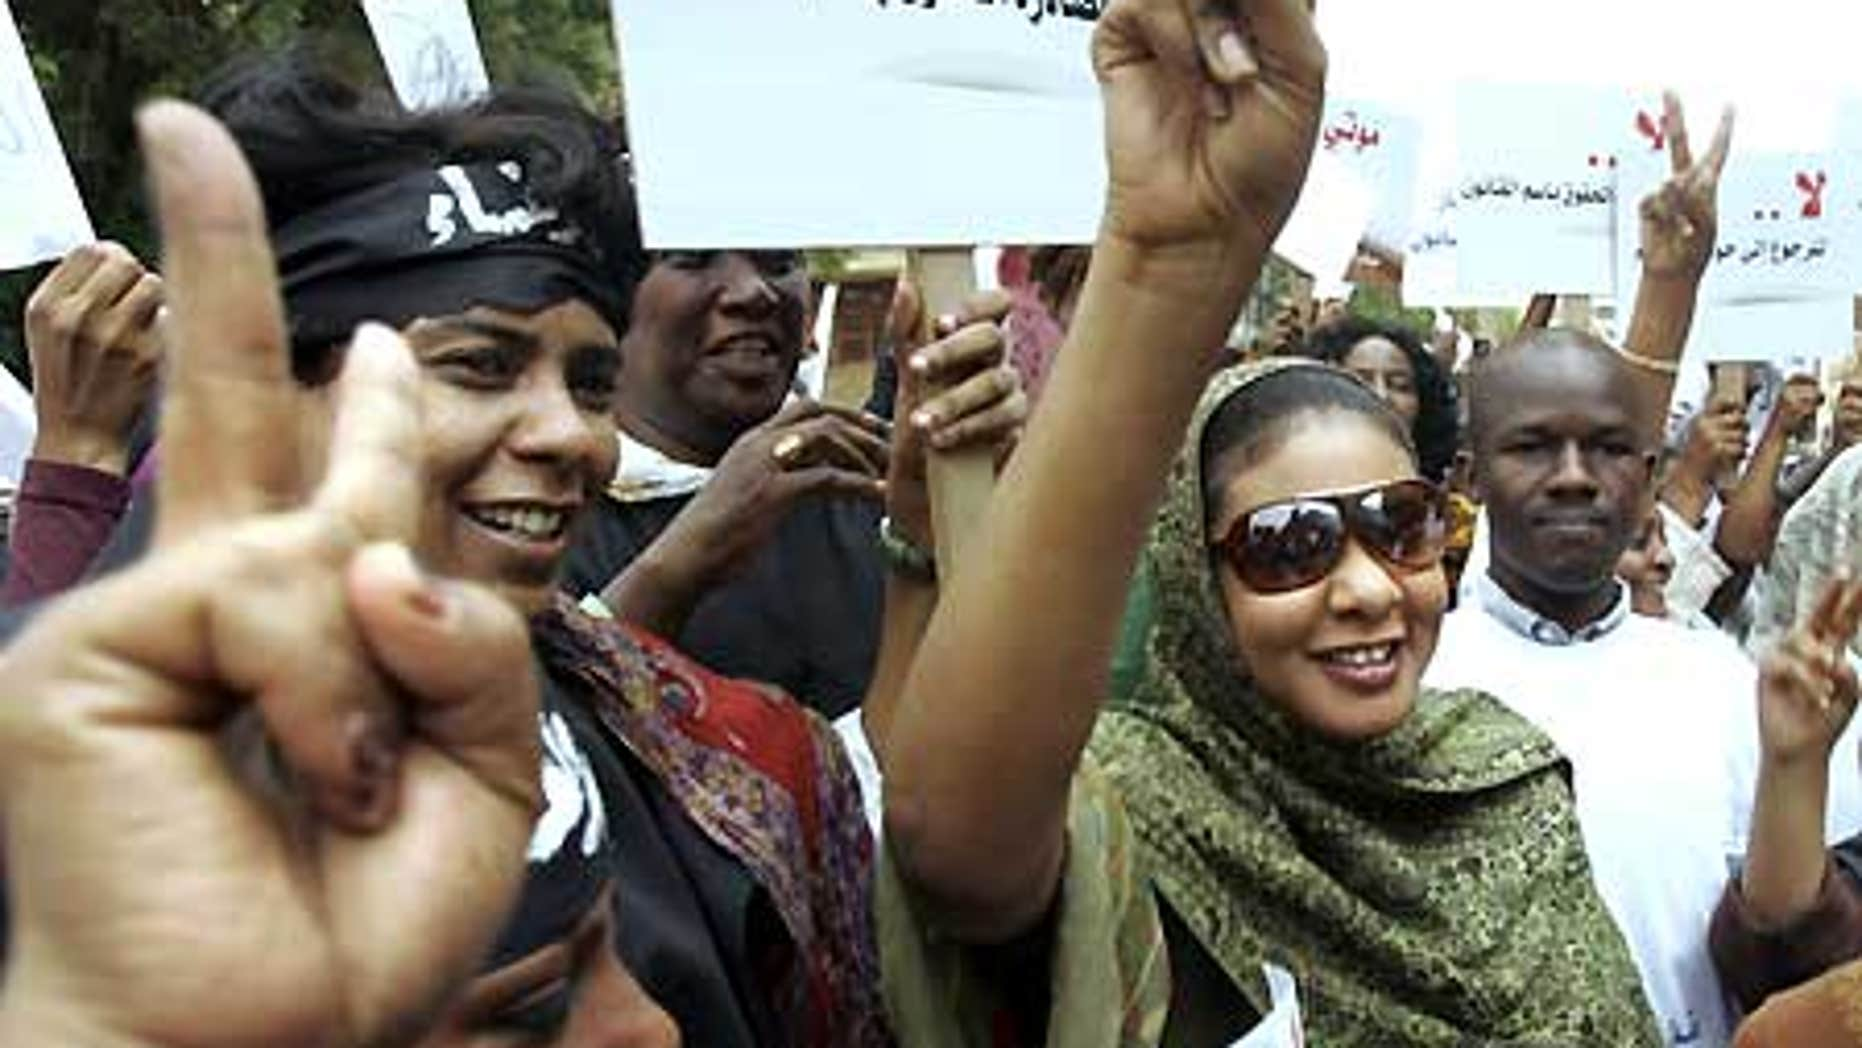 Aug. 4: Sudanese journalist Lubna Hussein, right, who faces 40 lashes on the charge of 'indecent dressing,' flashes a victory sign to her supporters.